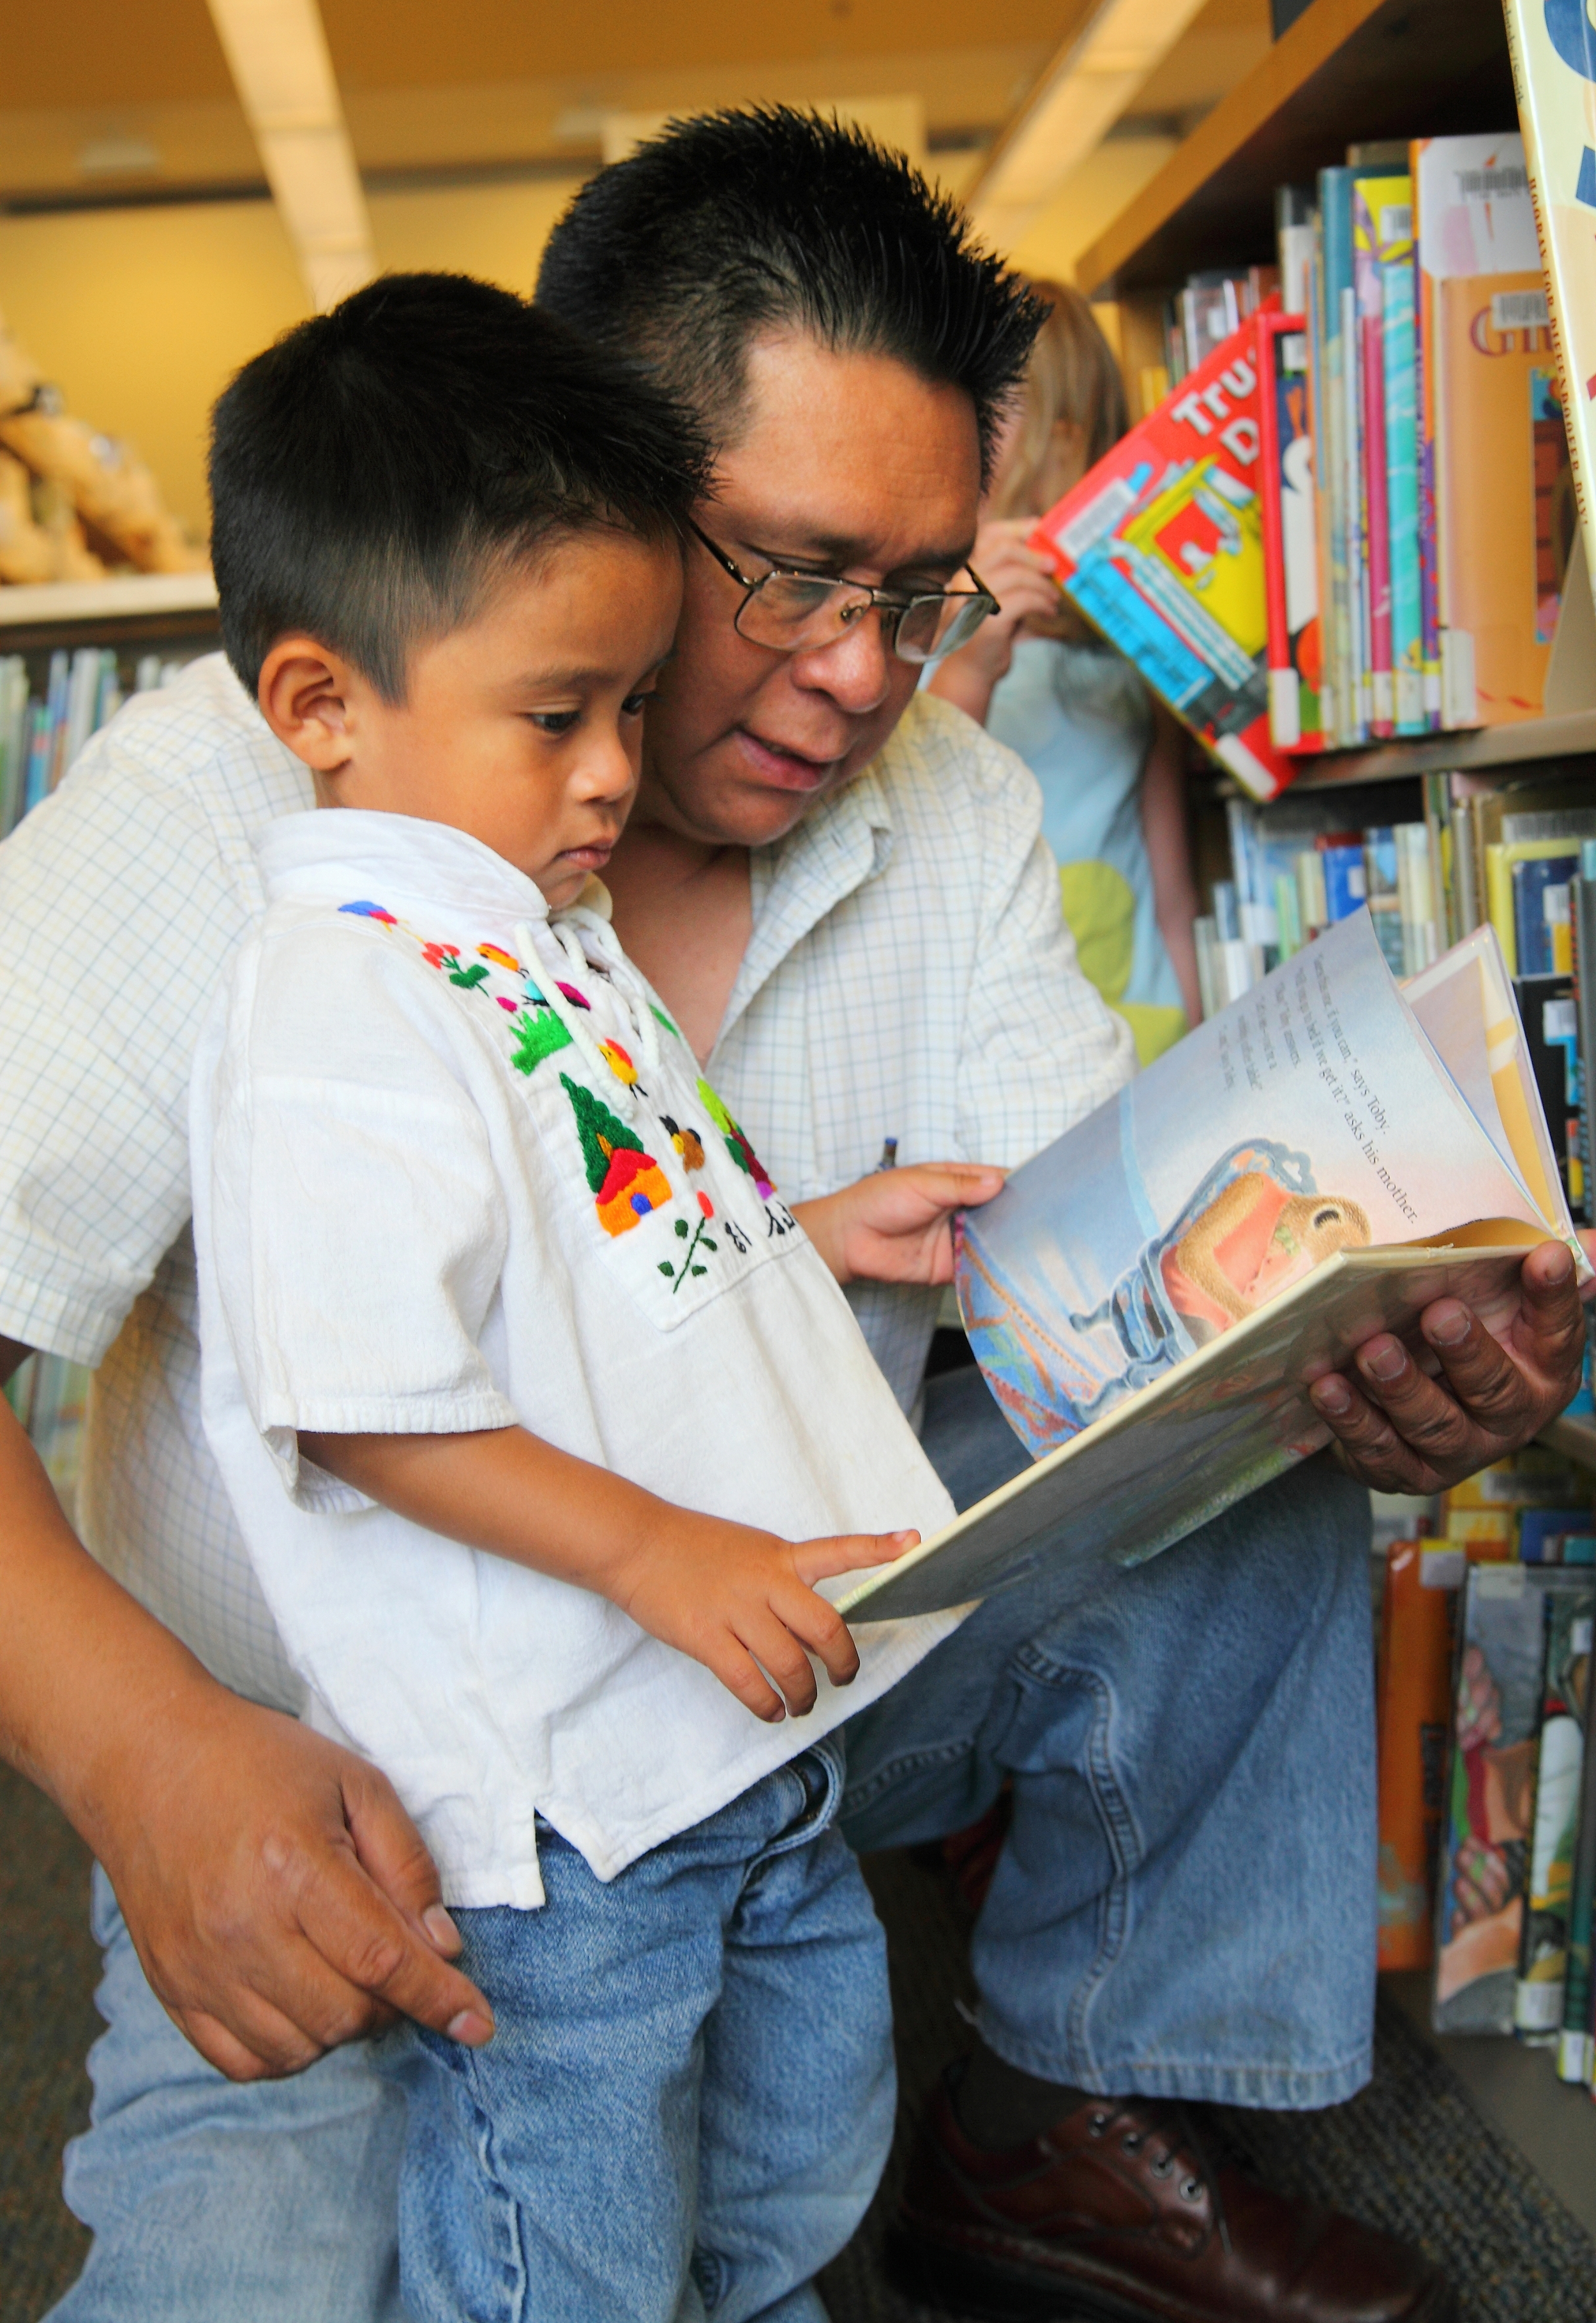 Libraries are longstanding institutions of sharing